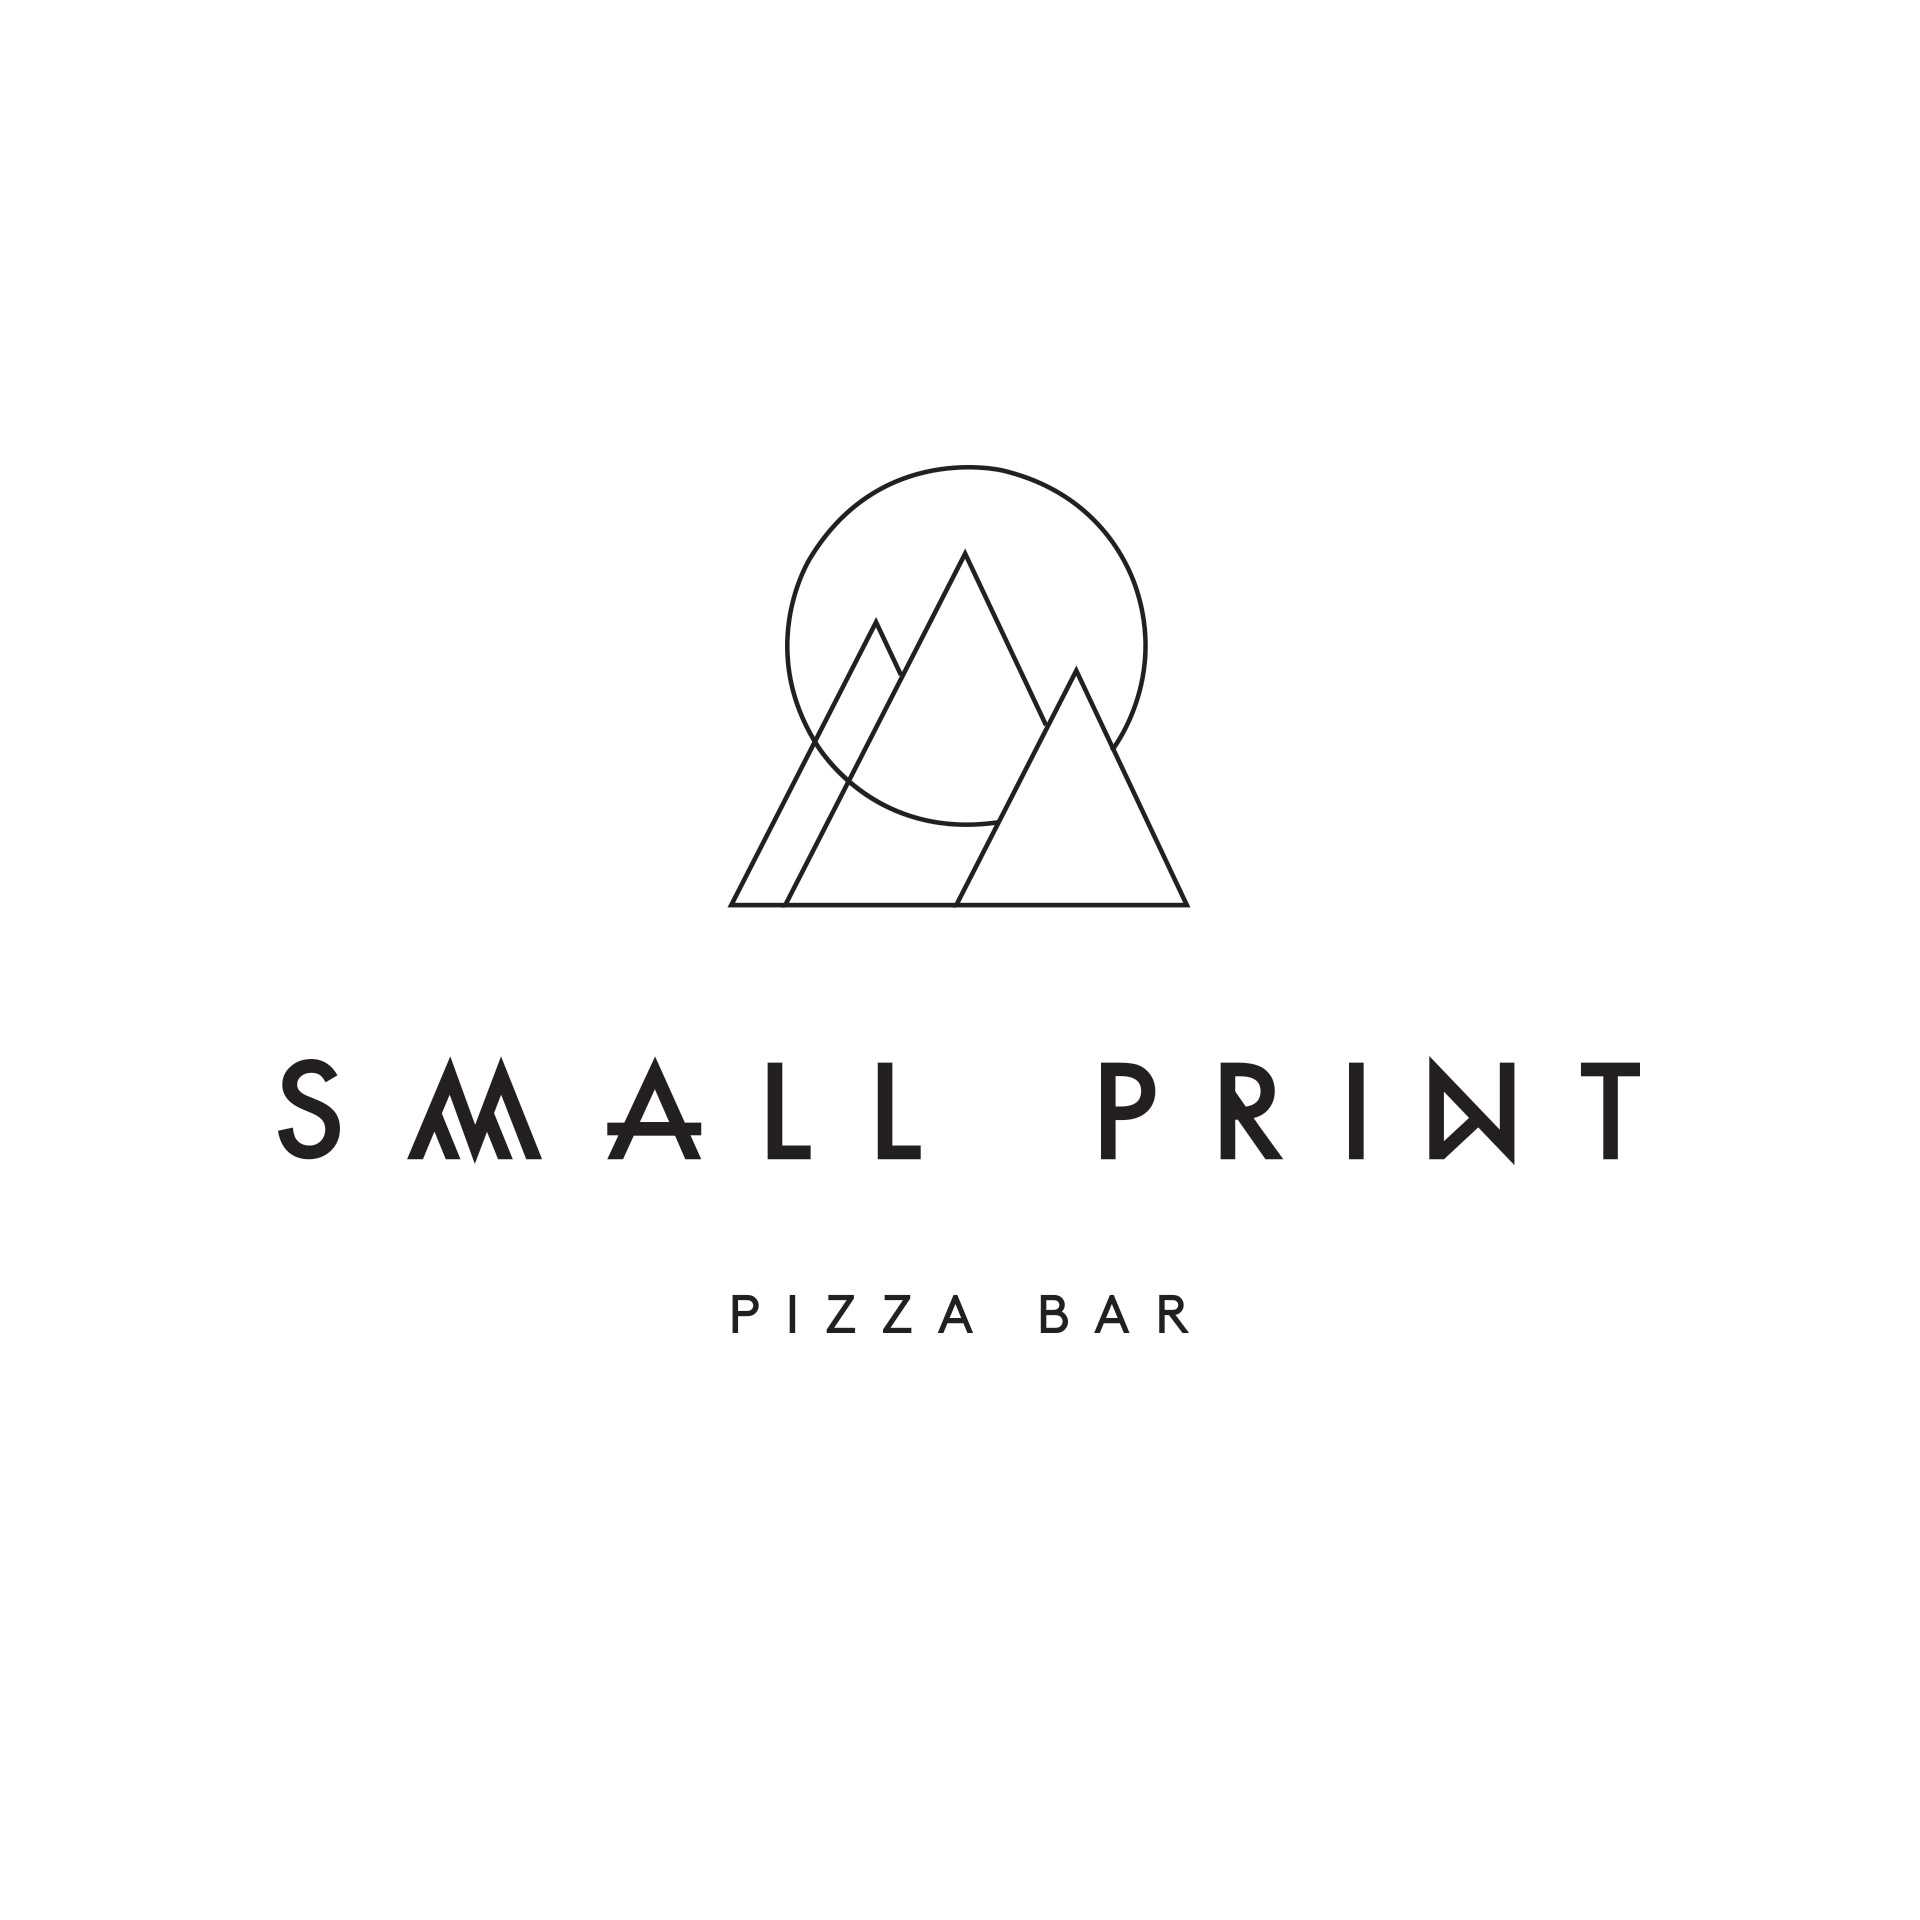 Studio Mimi Moon-Small-Print-Pizza-Bar-identity-and-signage-design-1